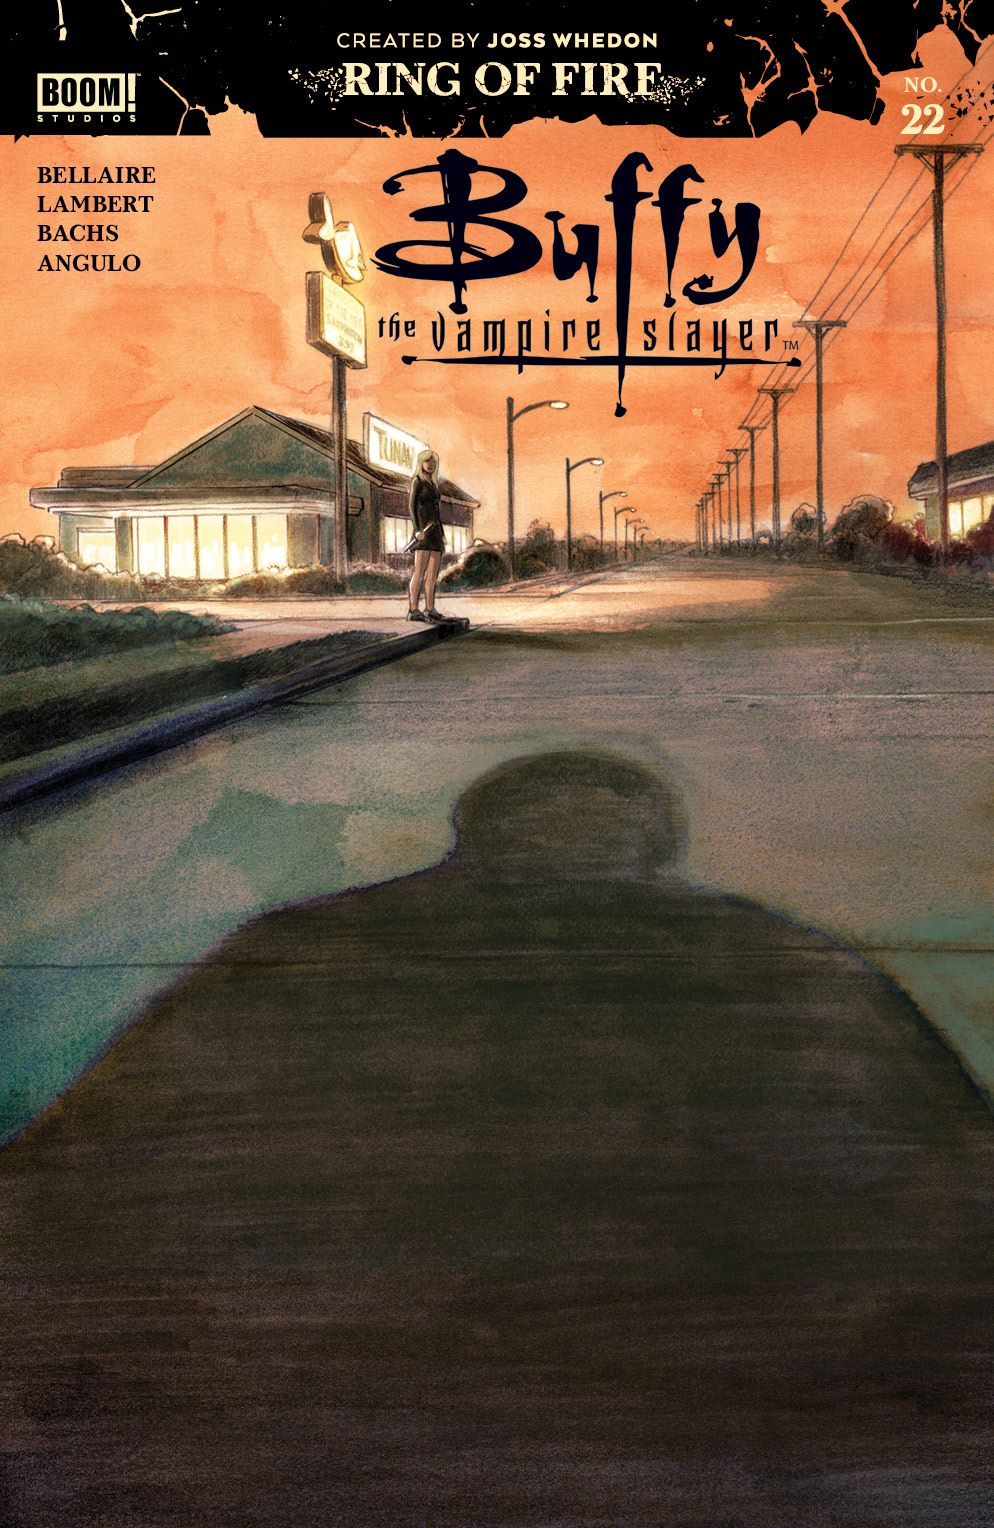 Buffy_022_Cover_A_Main_001 ComicList: BOOM! Studios New Releases for 02/03/2021